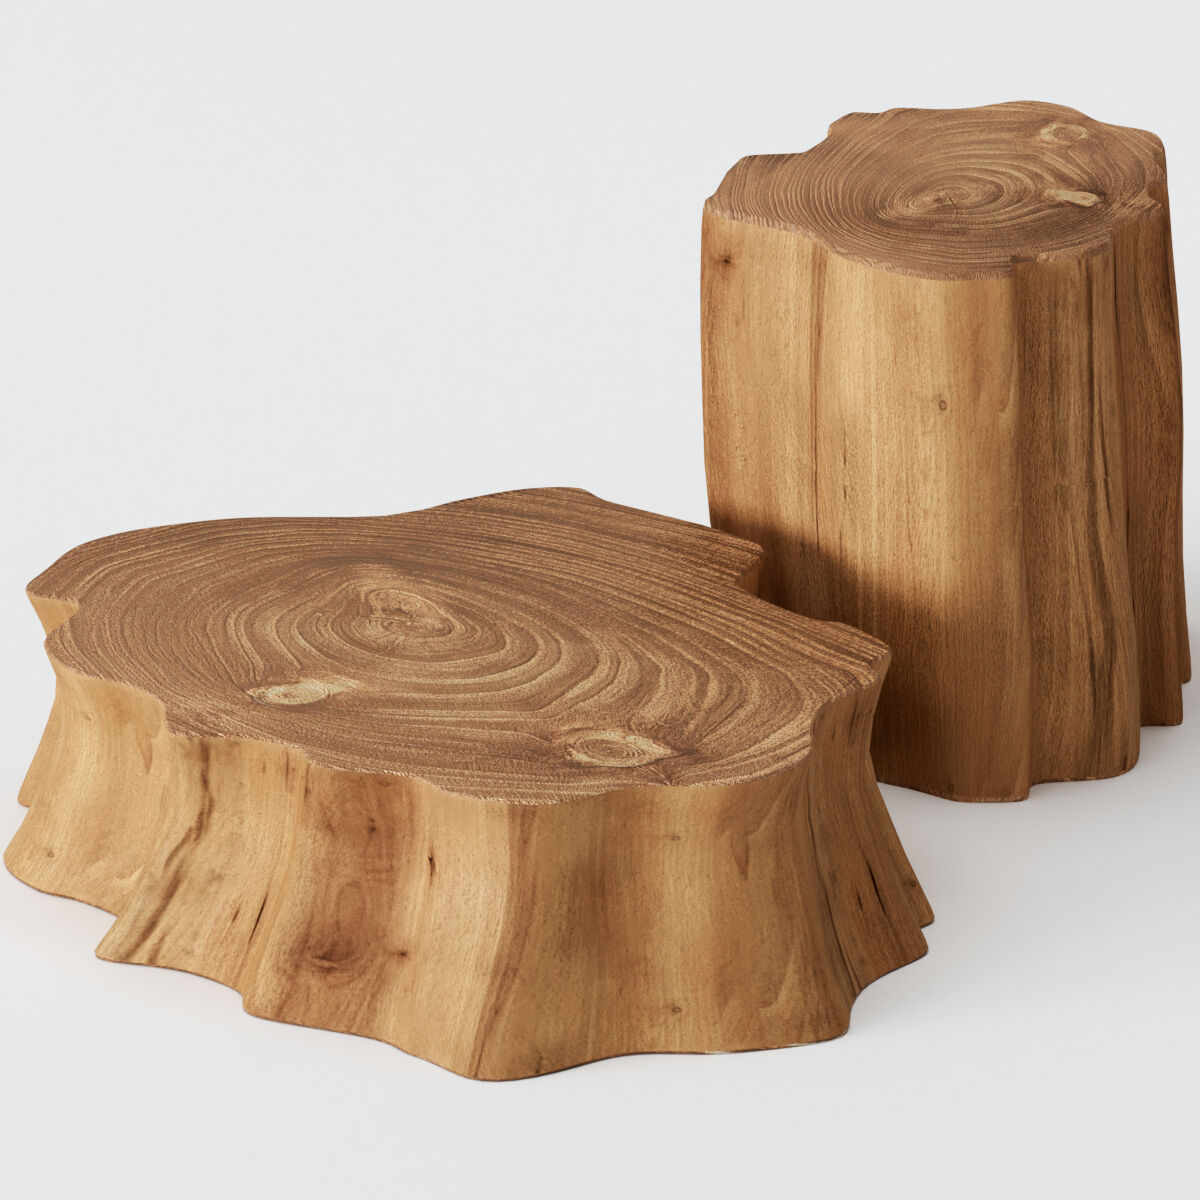 wooden stump coffee tables 3d model download 3d model wooden stump coffee tables 18998 3dbaza com